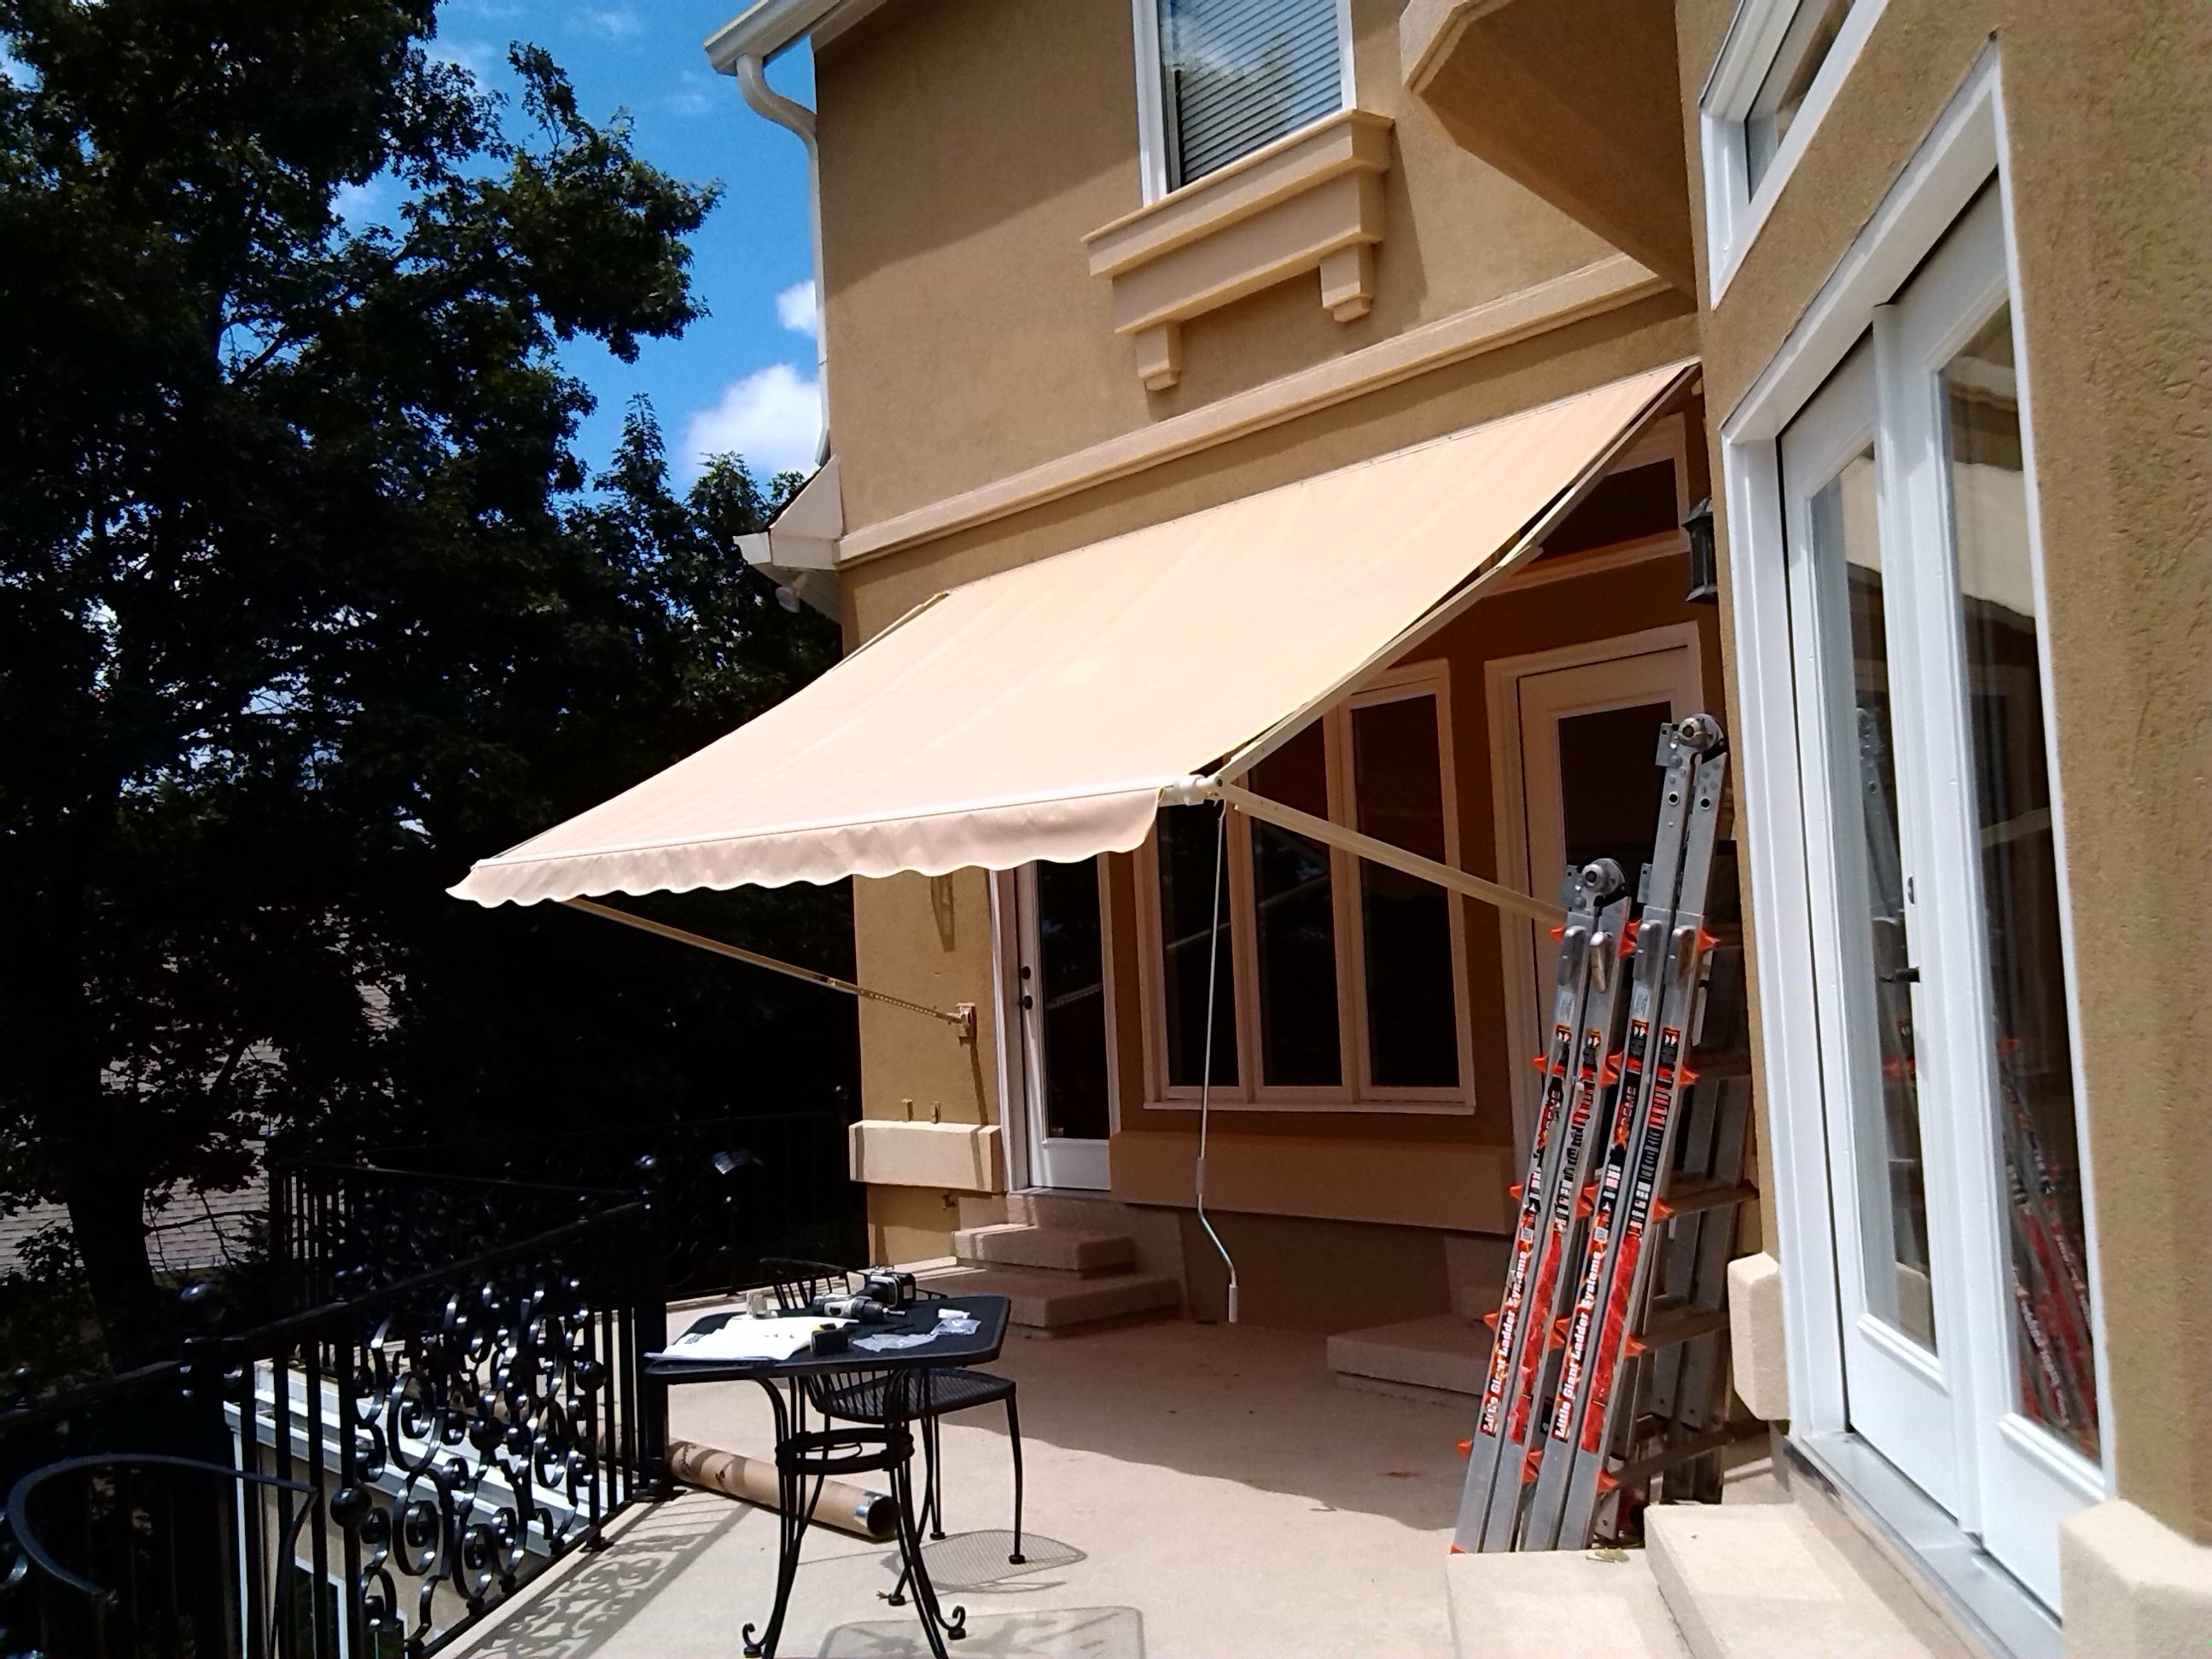 1000xt Amp 900xt Sunsetter Awnings By Lanier Aluminum Products